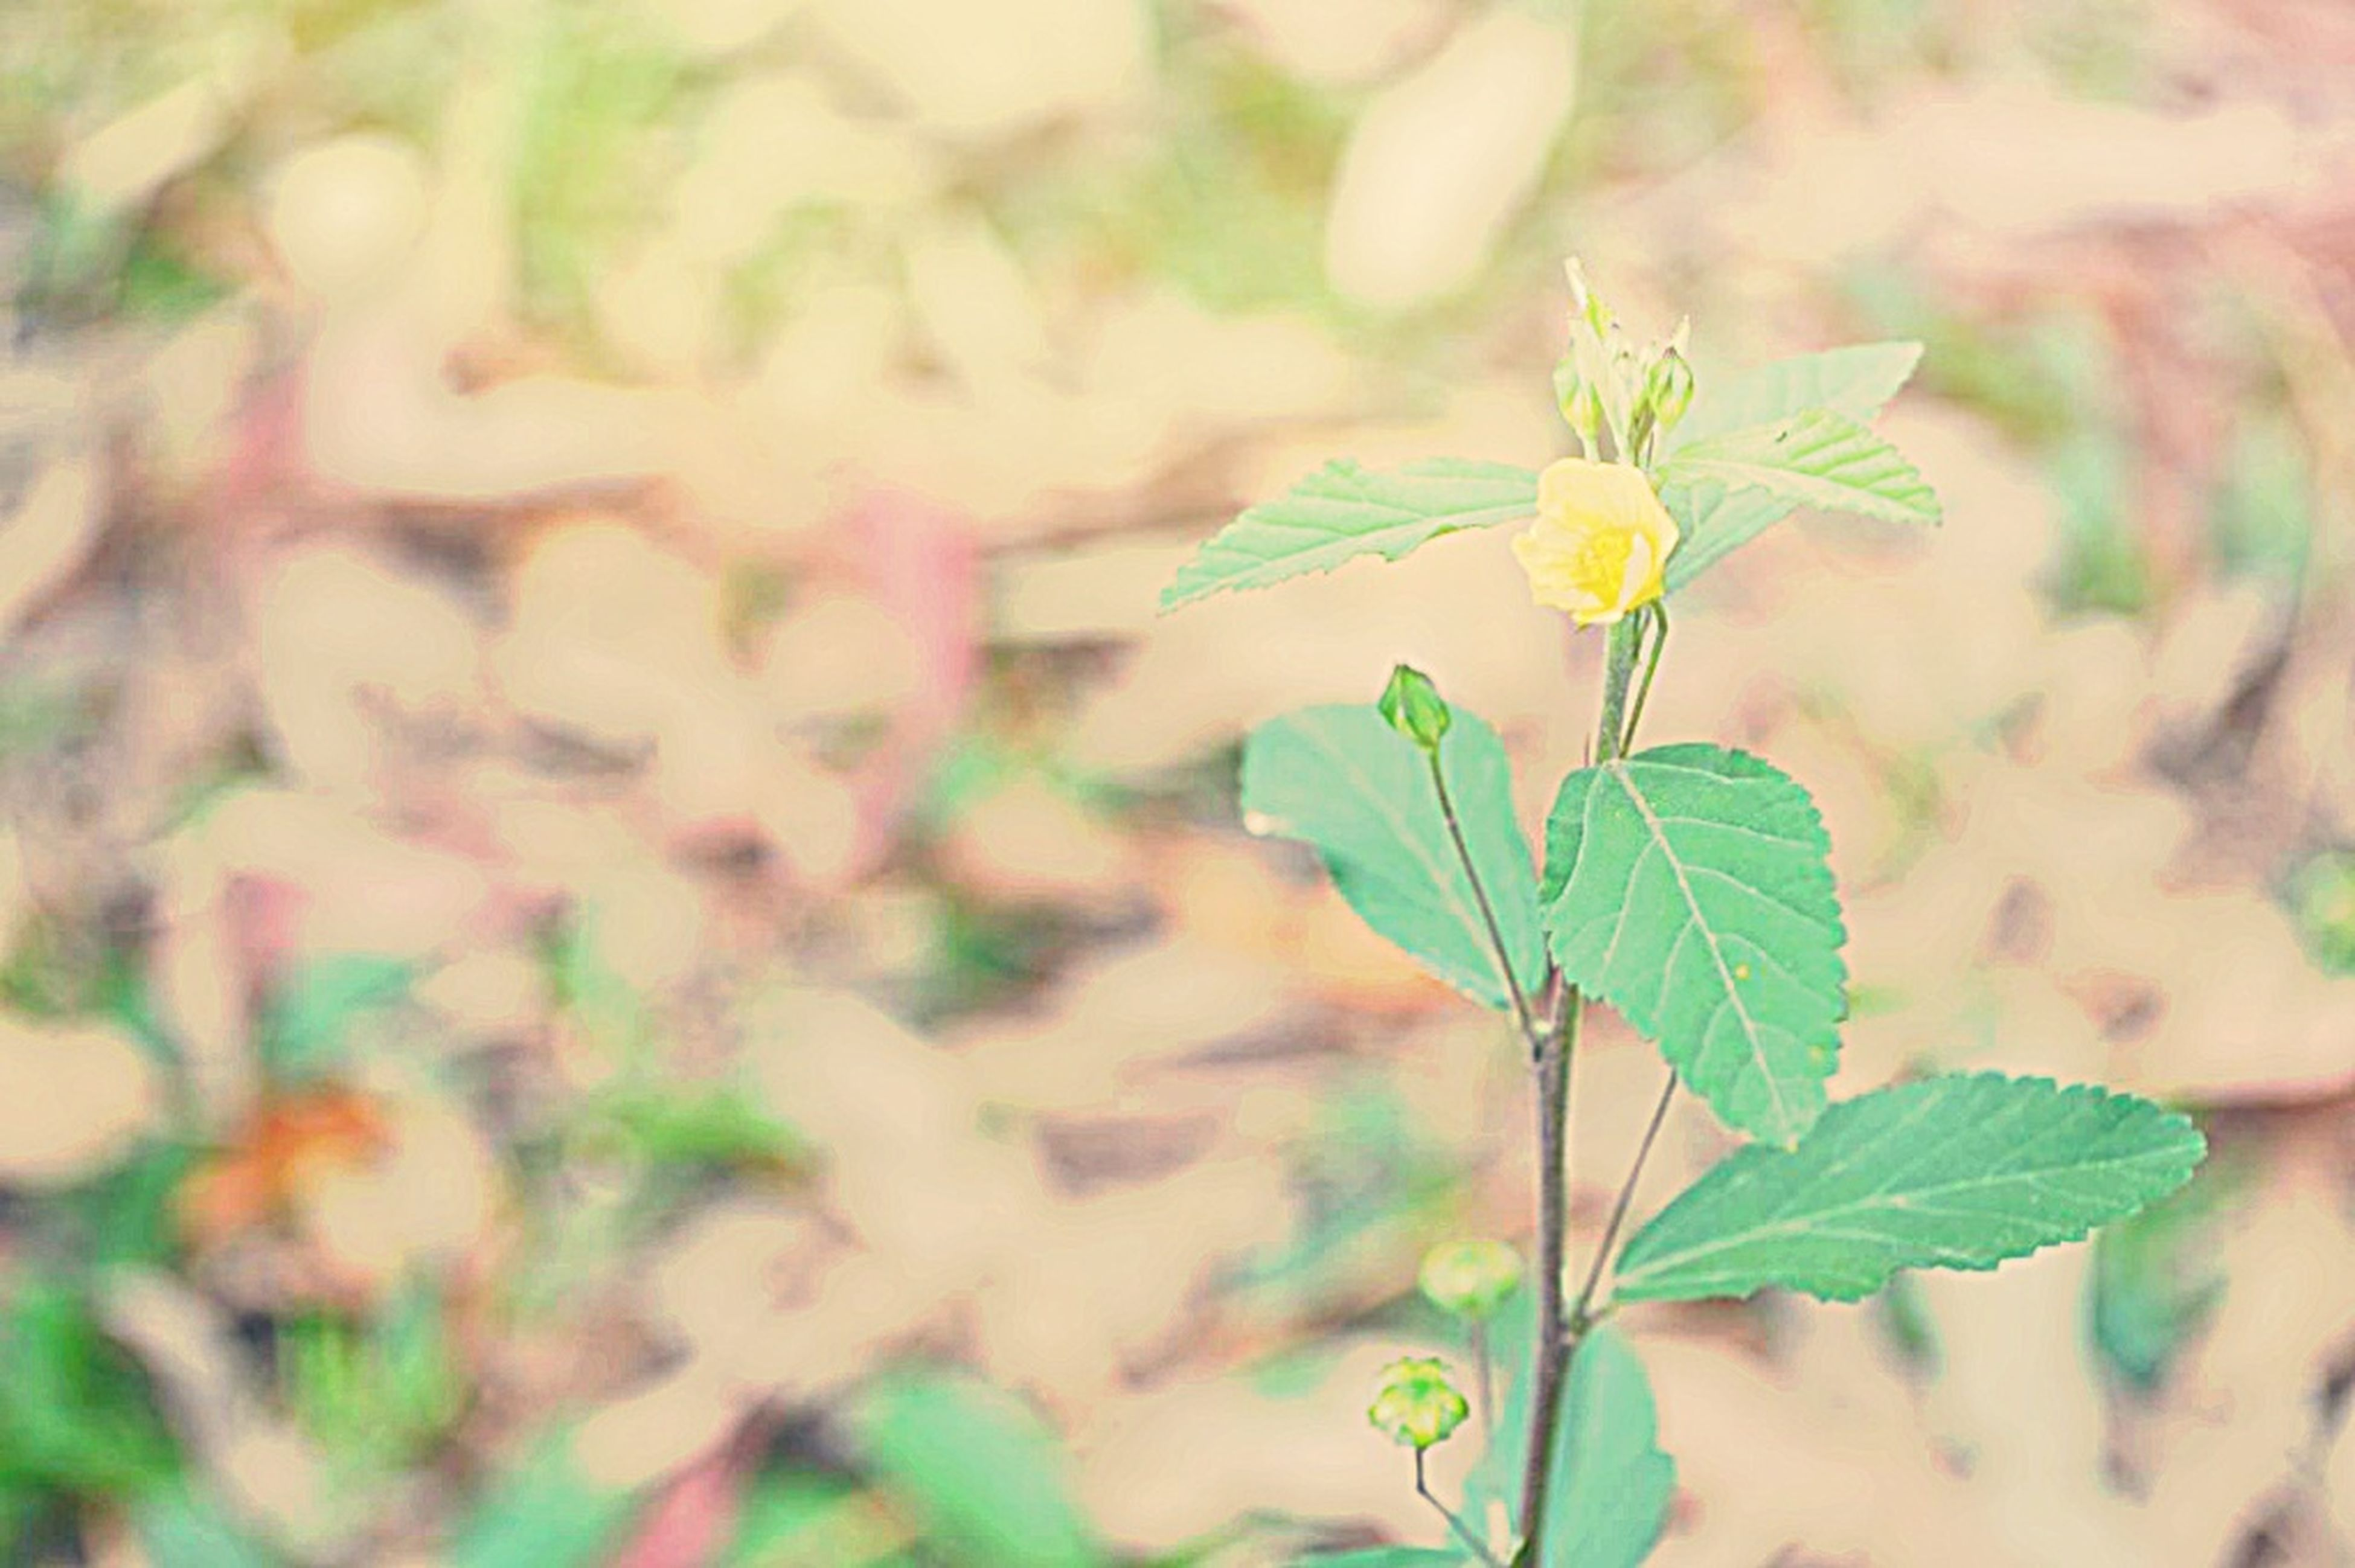 leaf, focus on foreground, plant, growth, close-up, stem, nature, green color, selective focus, flower, fragility, beauty in nature, freshness, outdoors, day, growing, bud, new life, twig, beginnings